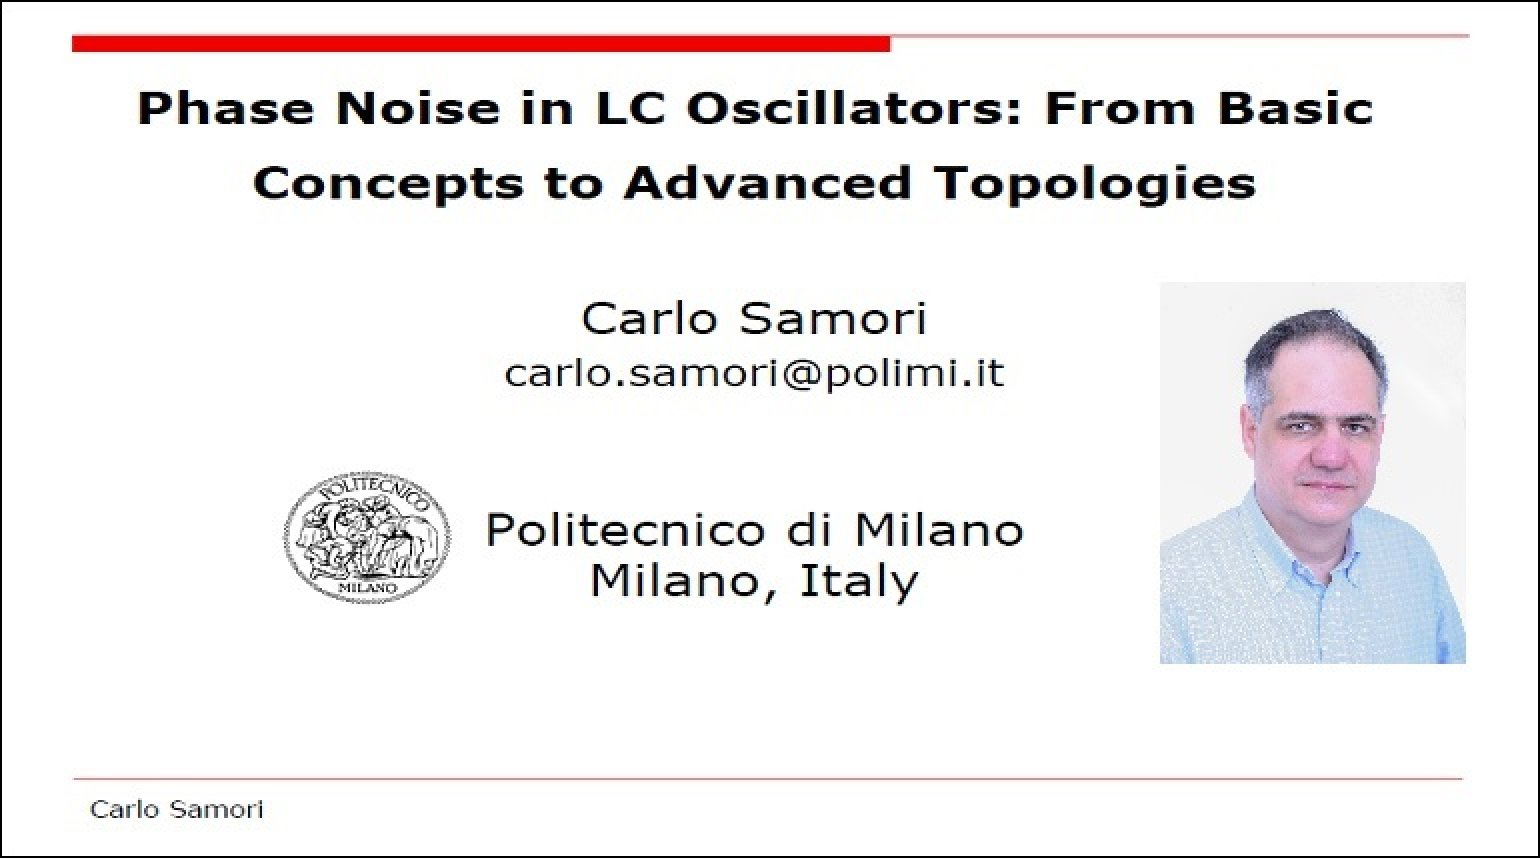 Phase Noise in LC Oscillators: From Basic Concepts to Advanced Topologies Video